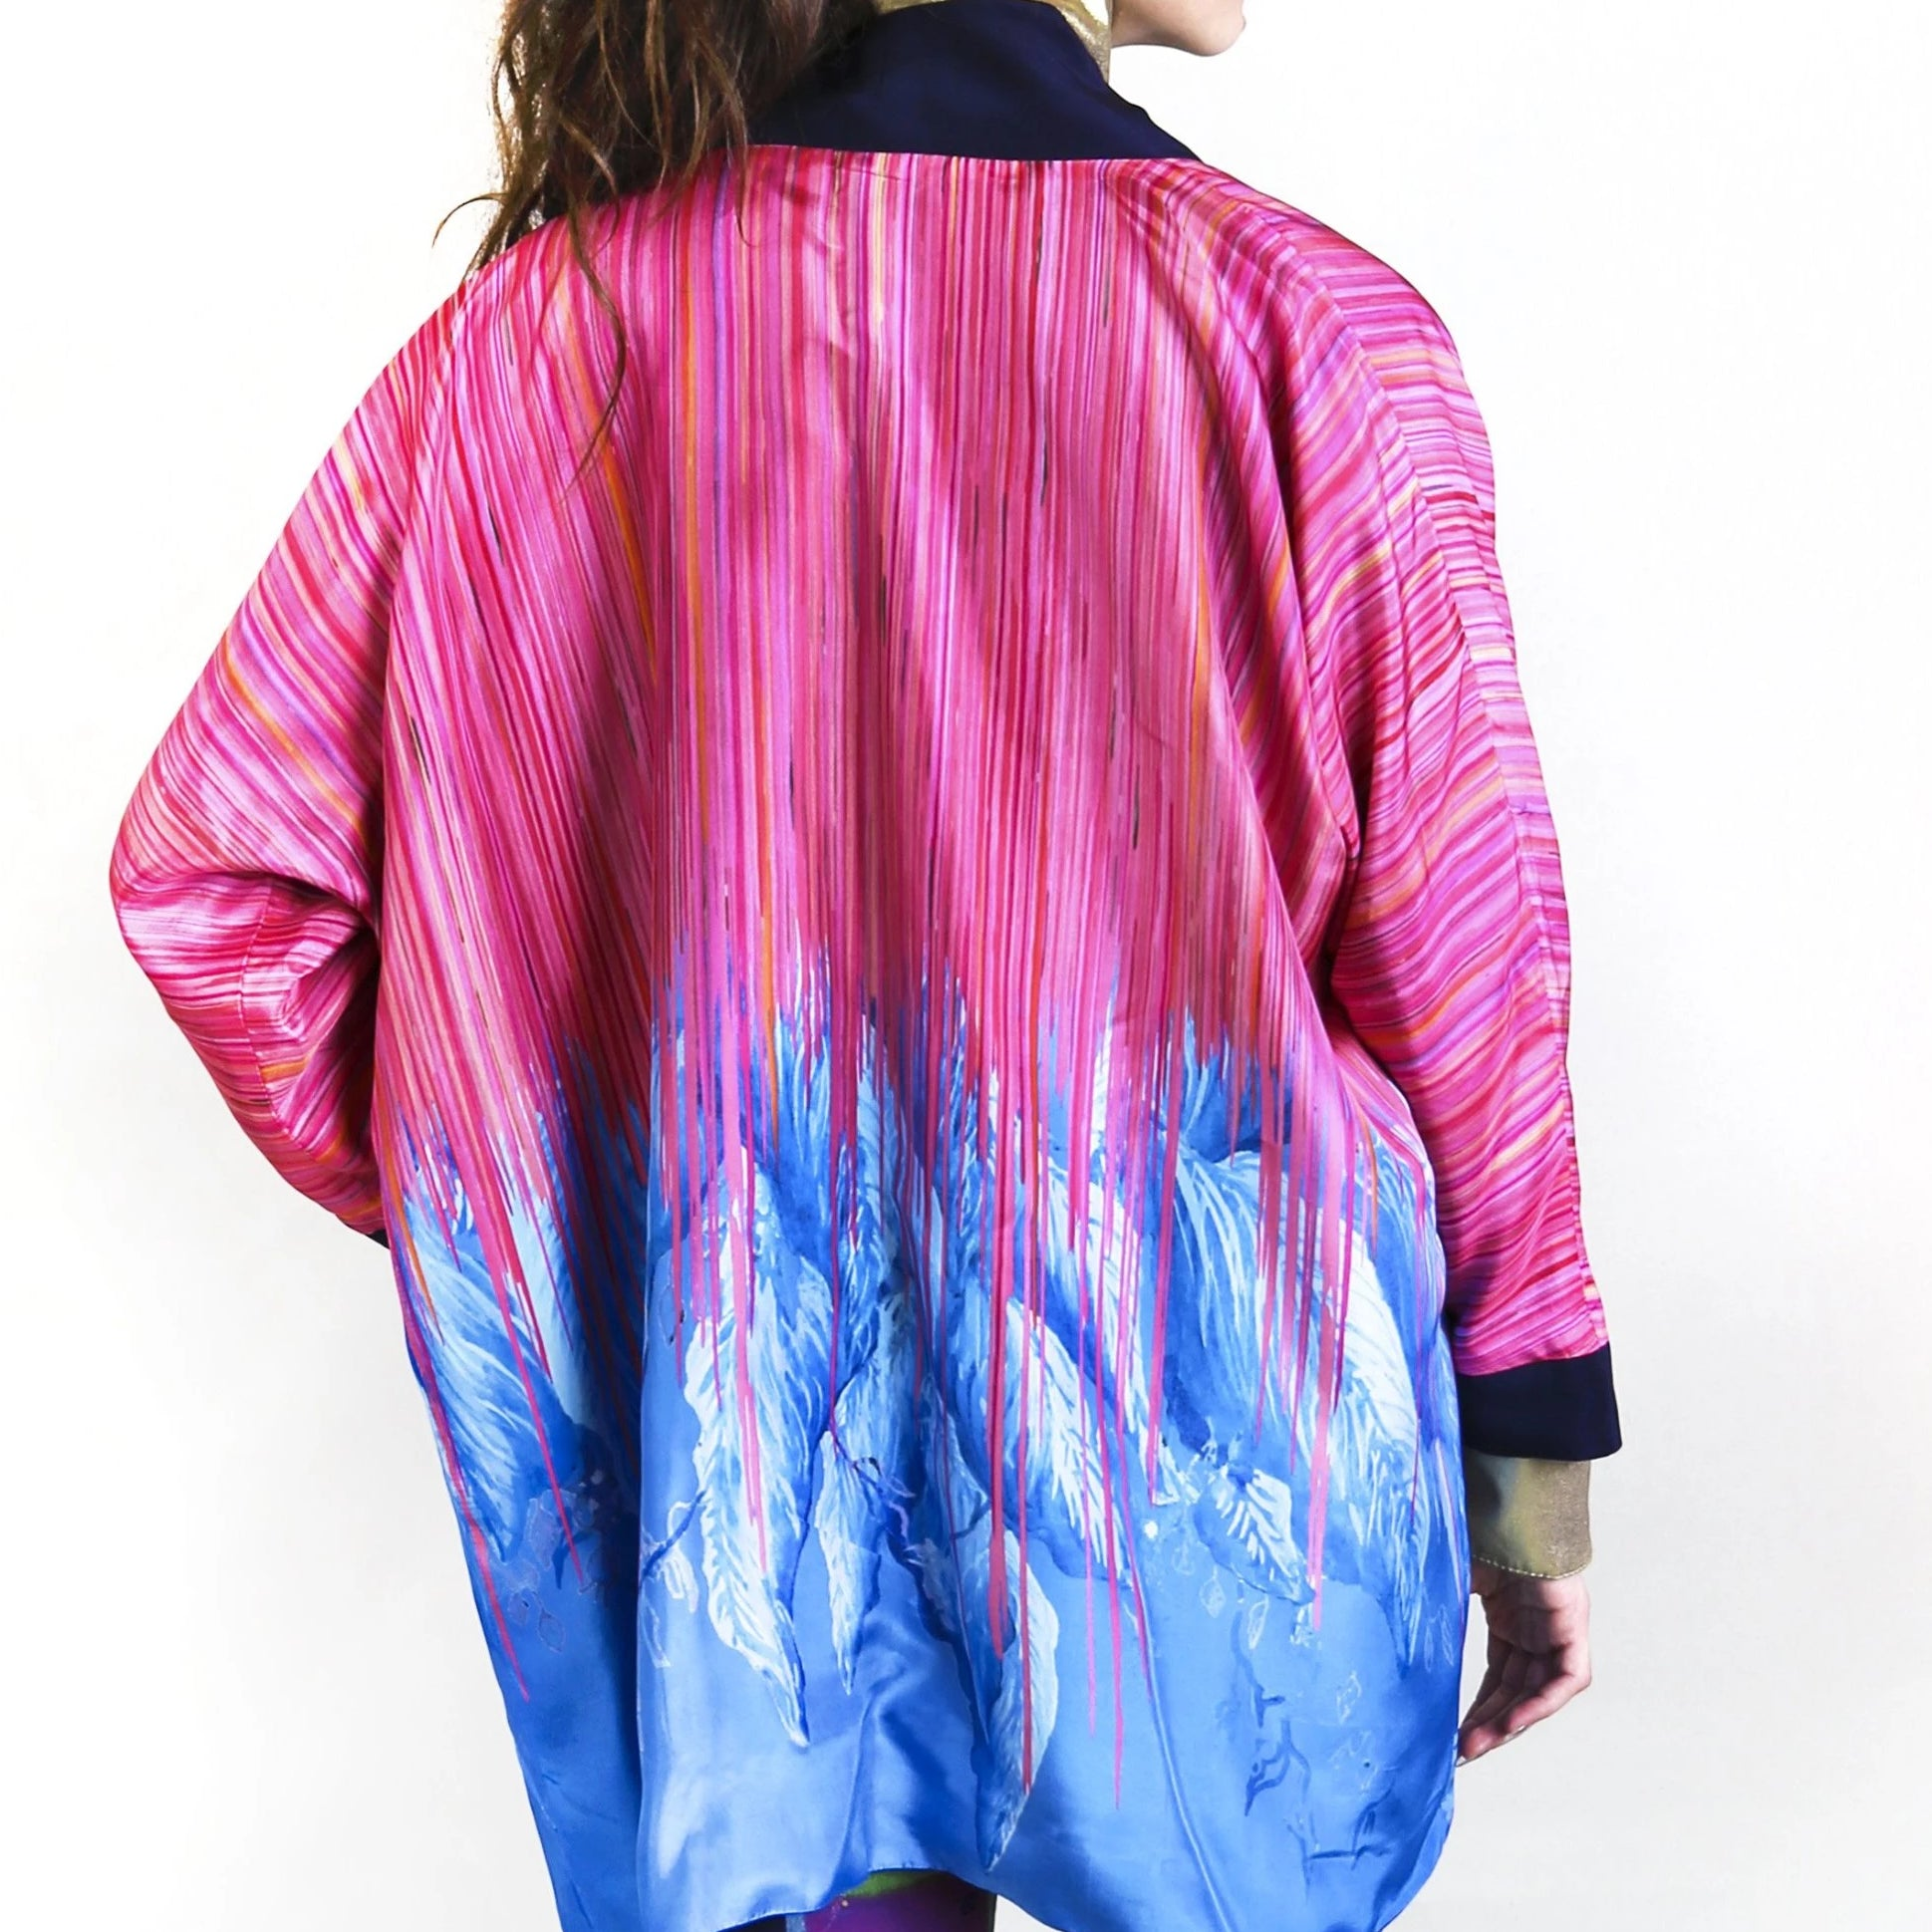 Silk Kimono Pink and Blue - Davina Shefet Art Store